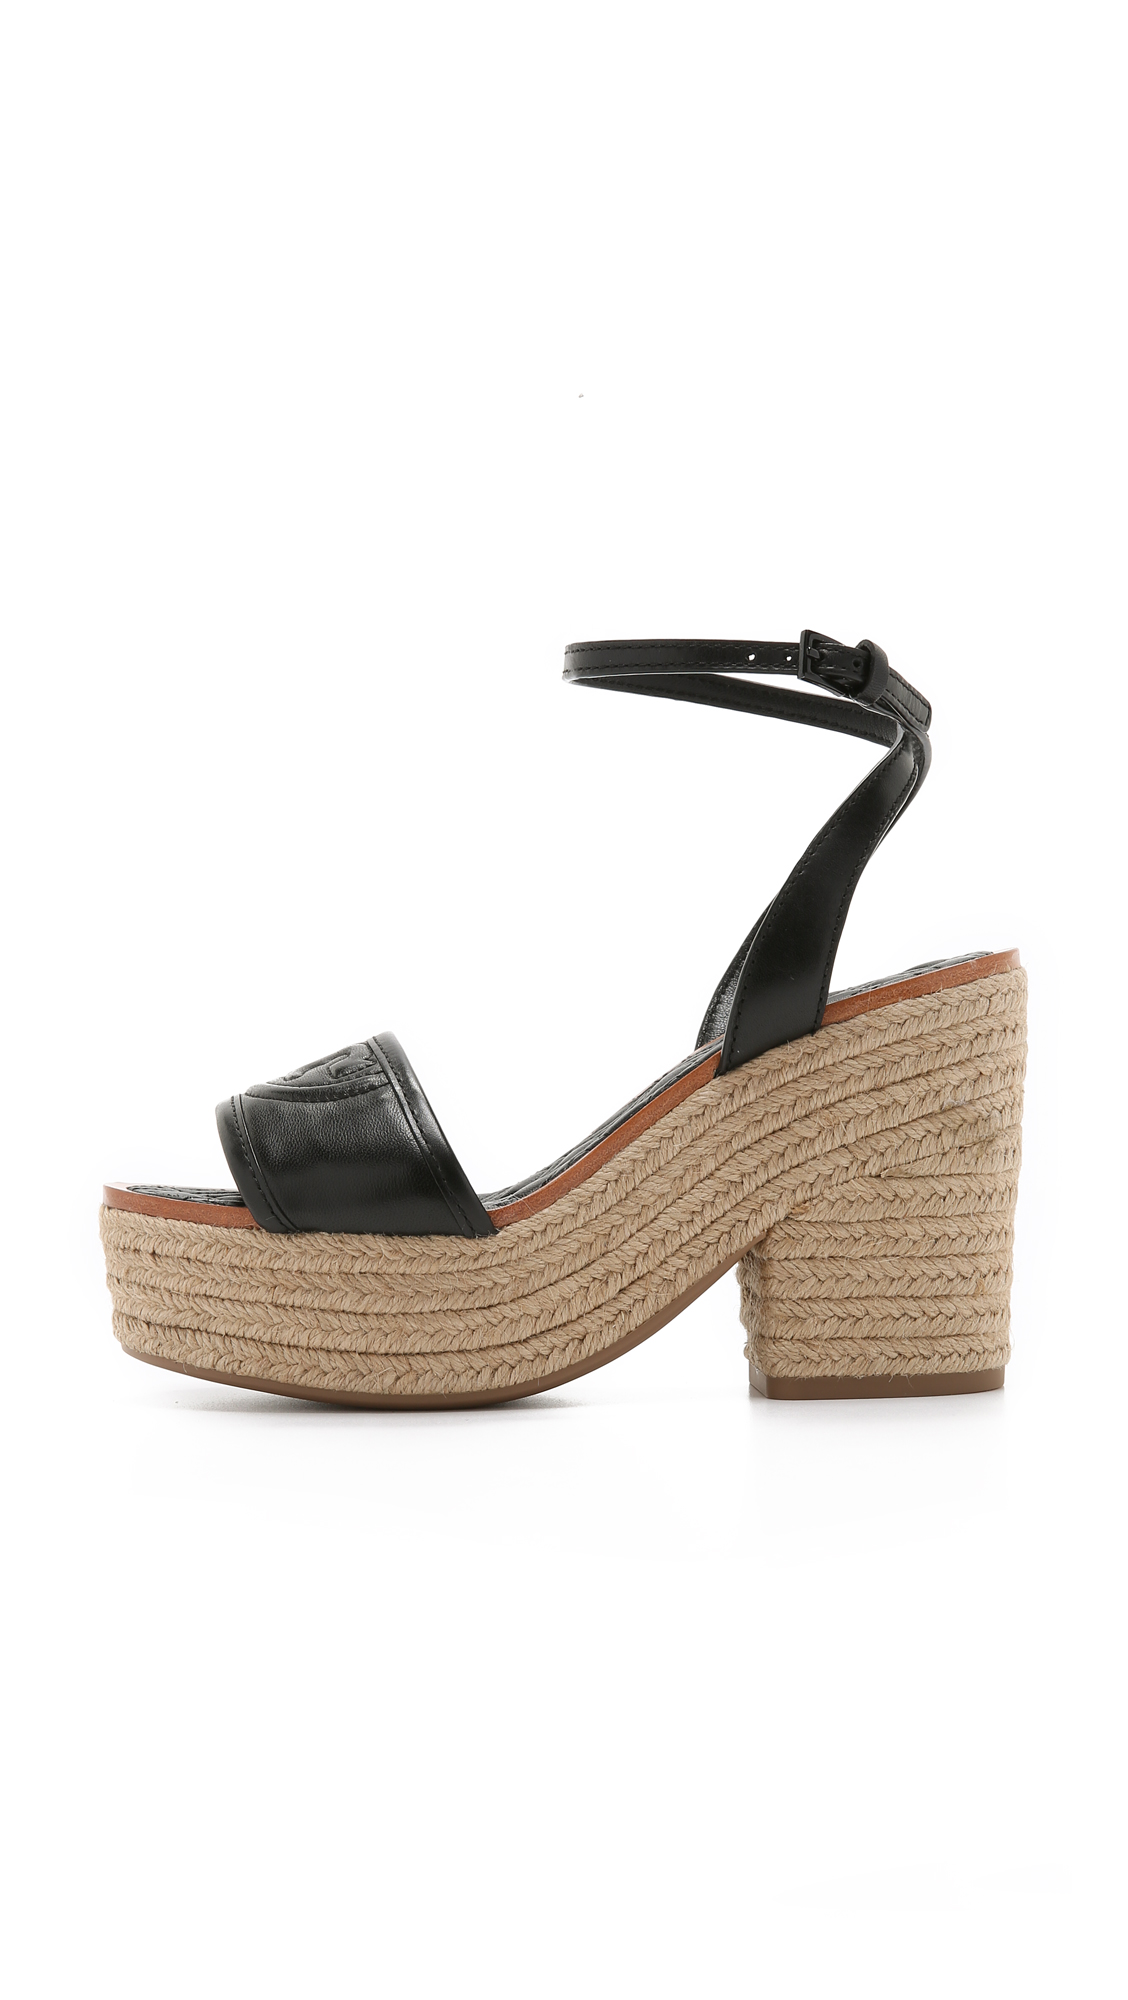 80a4a78e8 Tory Burch Marion Quilted Espadrille Sandals | SHOPBOP